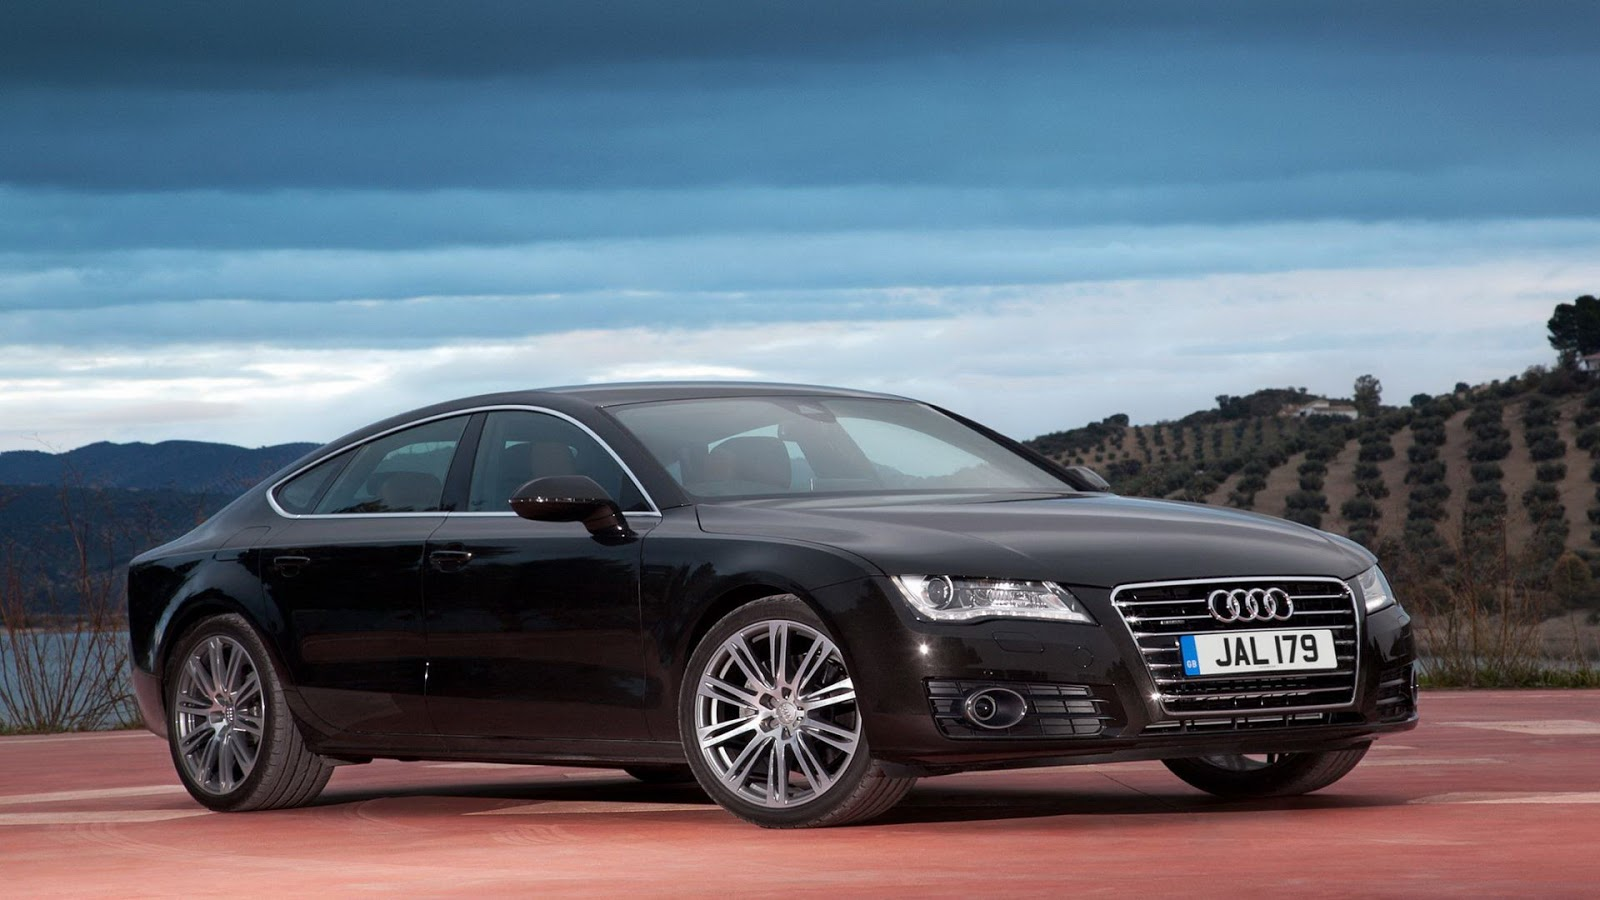 audi a7 hd wallpapers pictures images and photos gallary